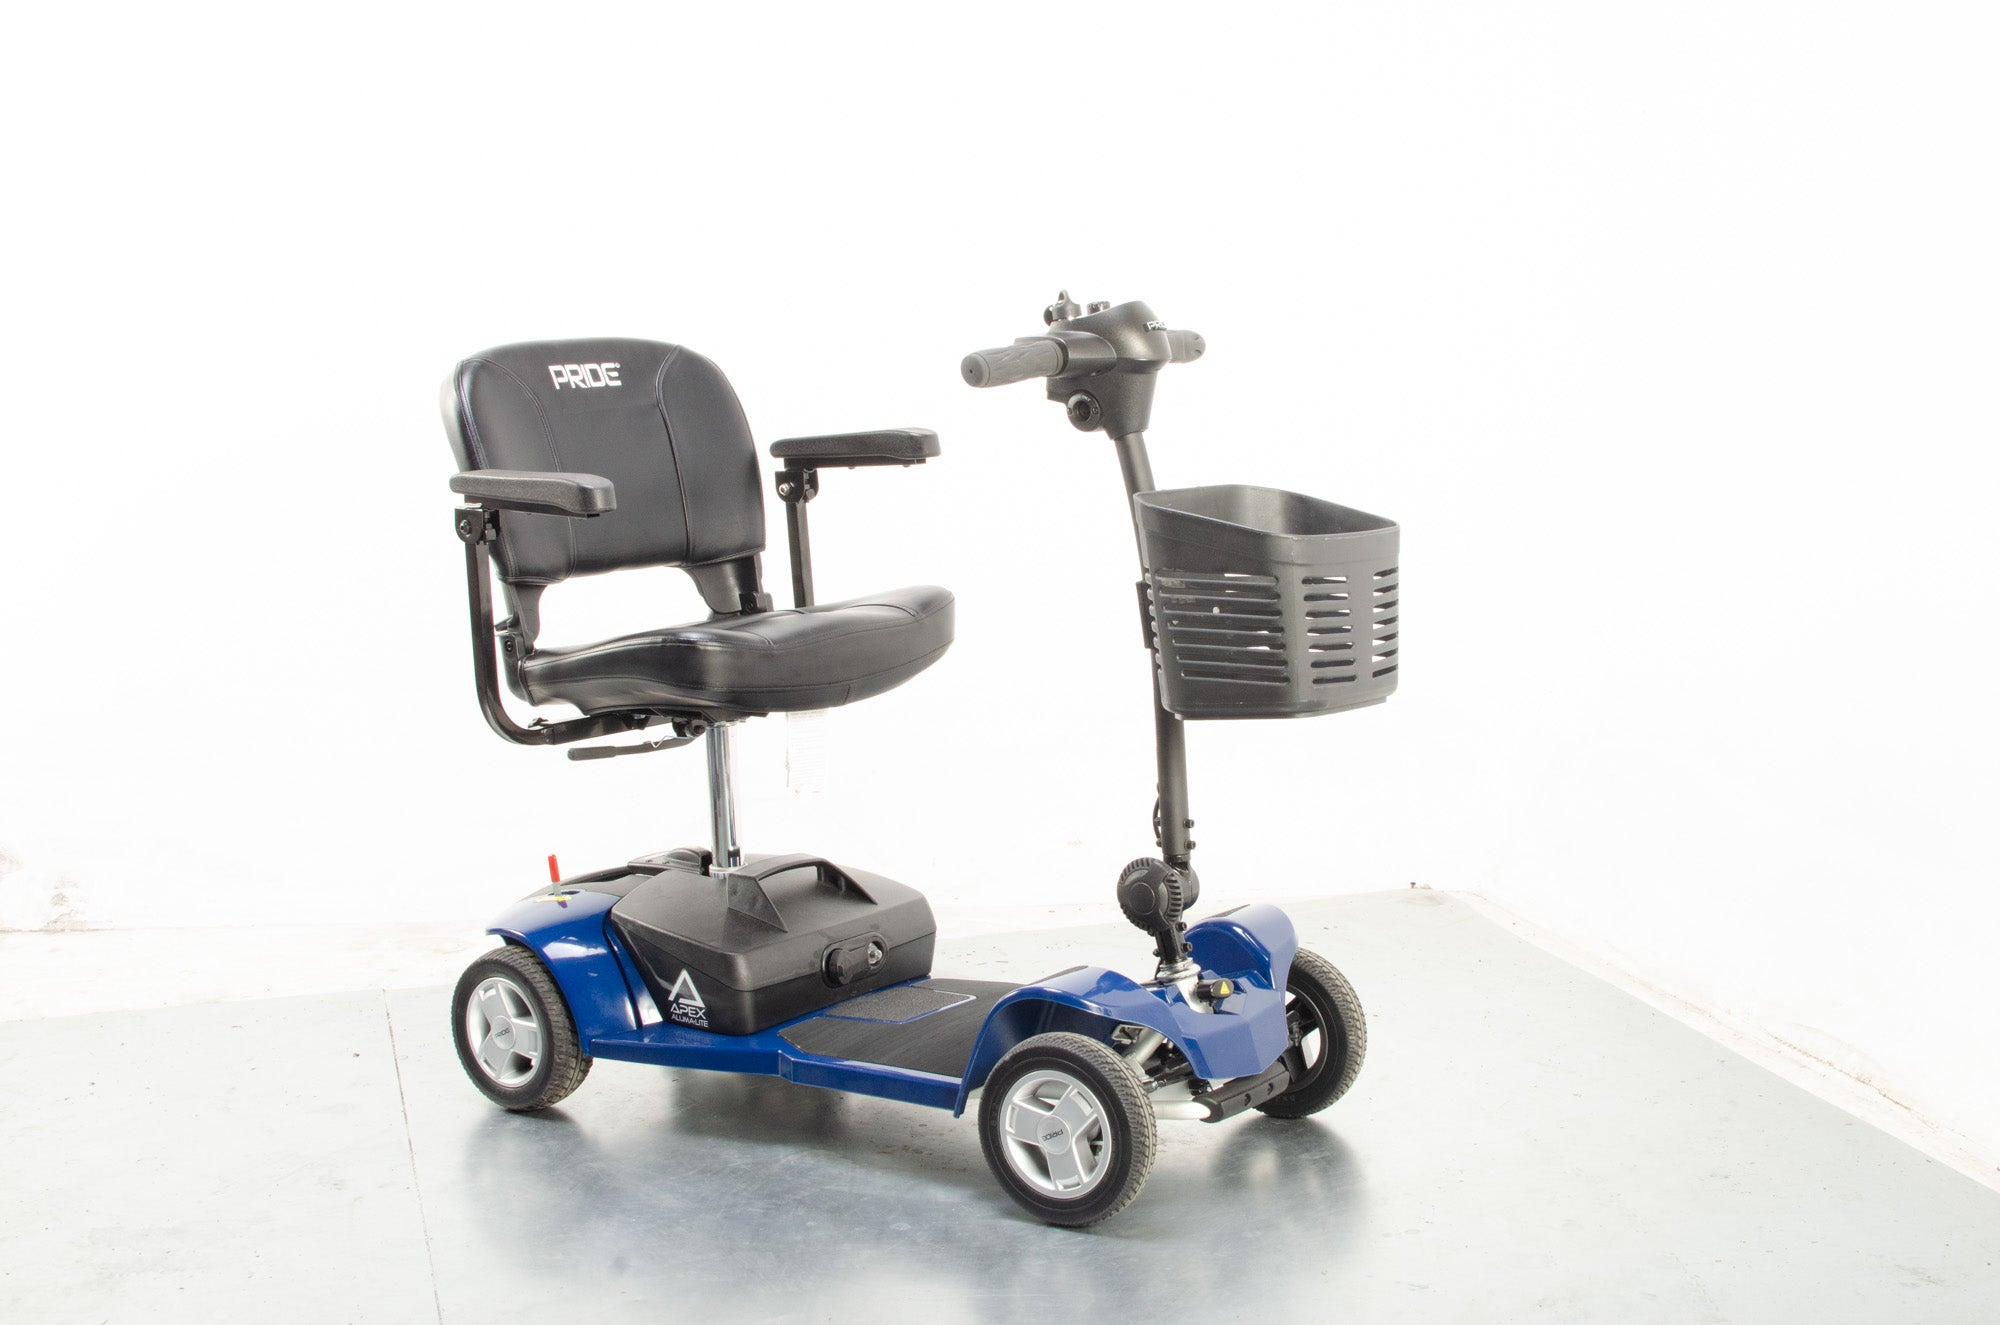 2020 Pride Apex Alumalite 4mph Electric Mobility Boot Scooter Aluminium Lithium Battery Blue